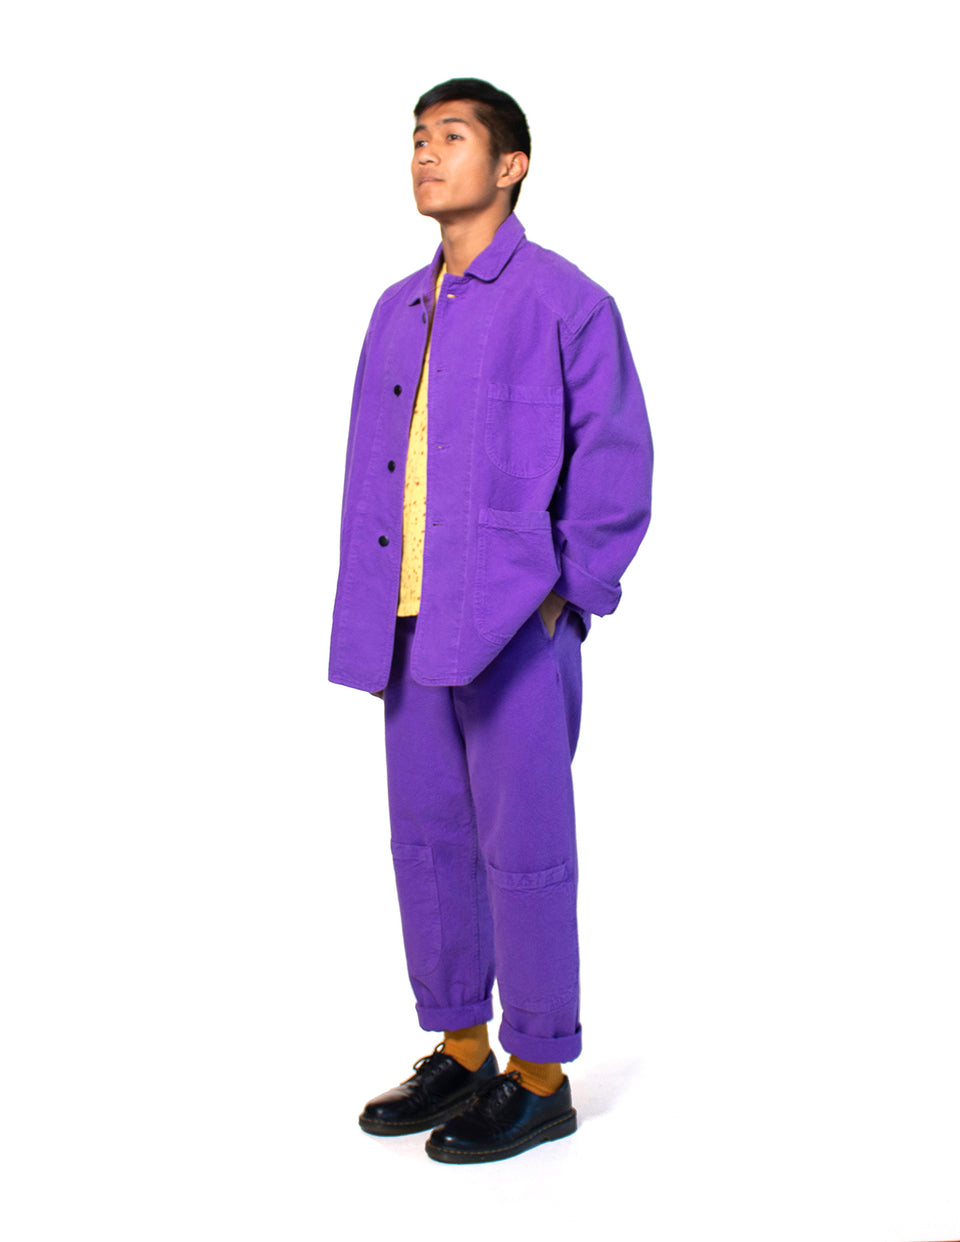 Grape Soda Jacket